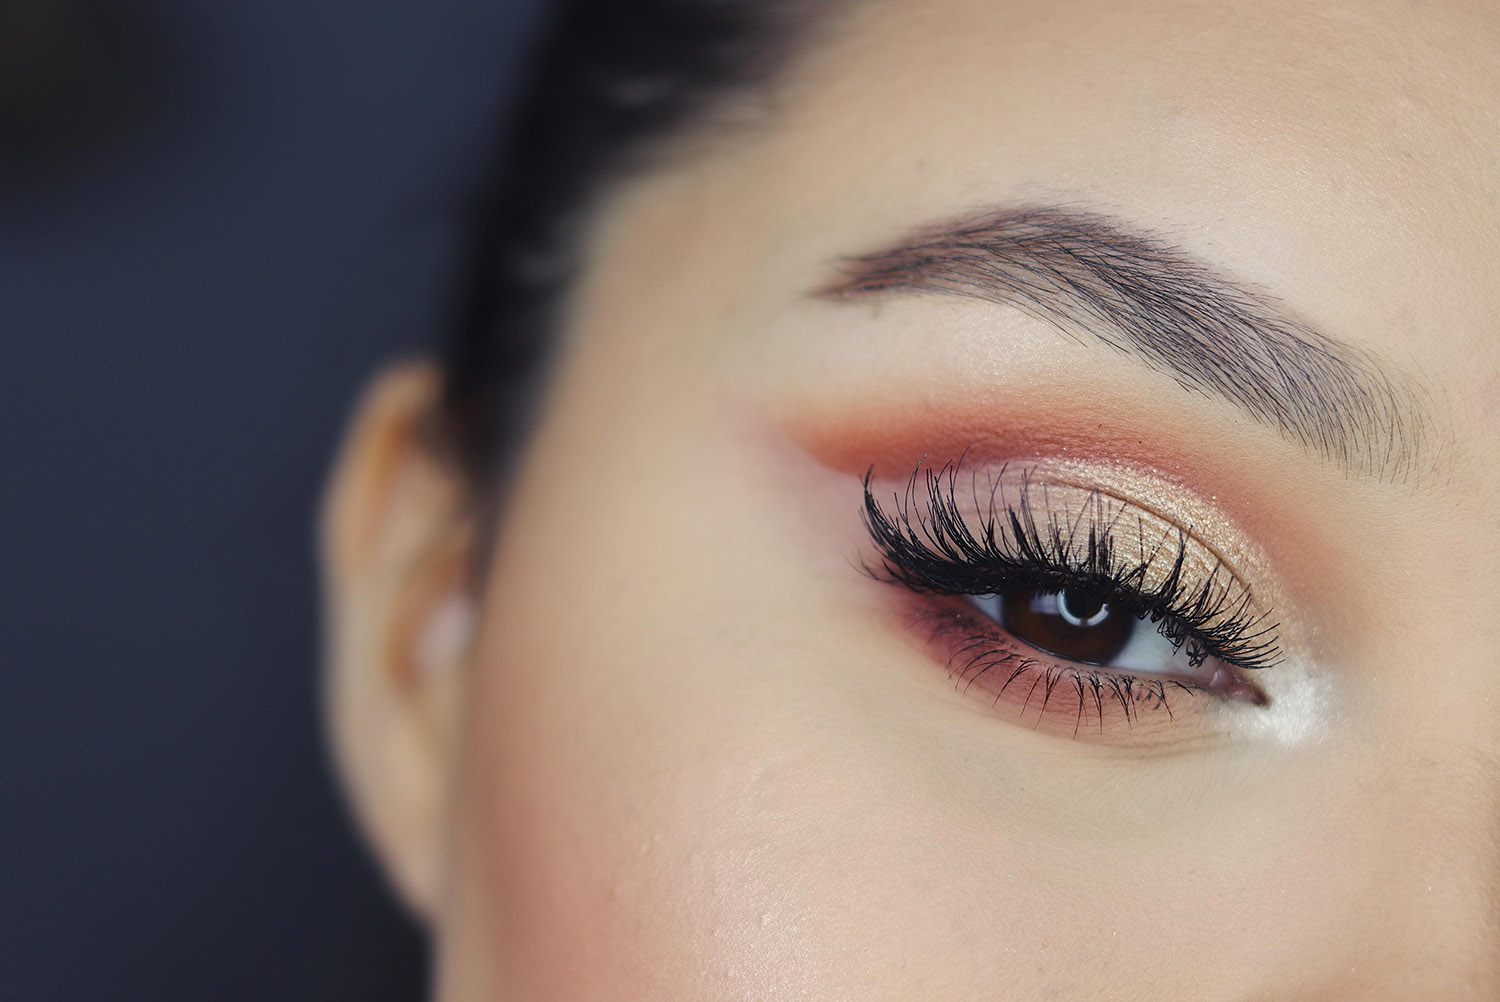 Coconut oil is a great natural eye makeup remover.